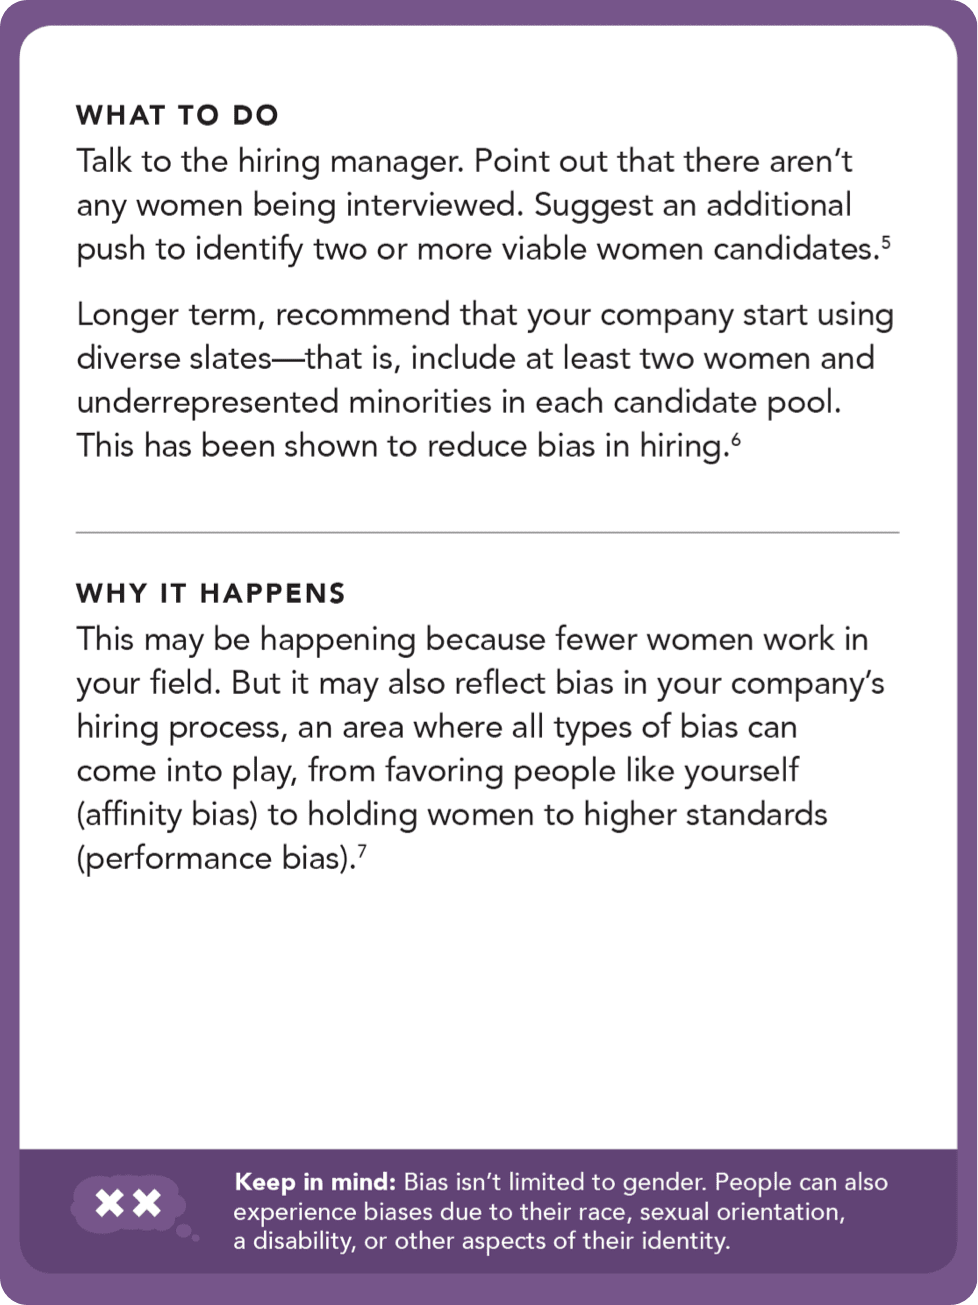 Back of card: What to do: Talk to the hiring manager. Point out that there aren't any women being interviewed. Suggest and additional push to identify two or more viable women candidates.